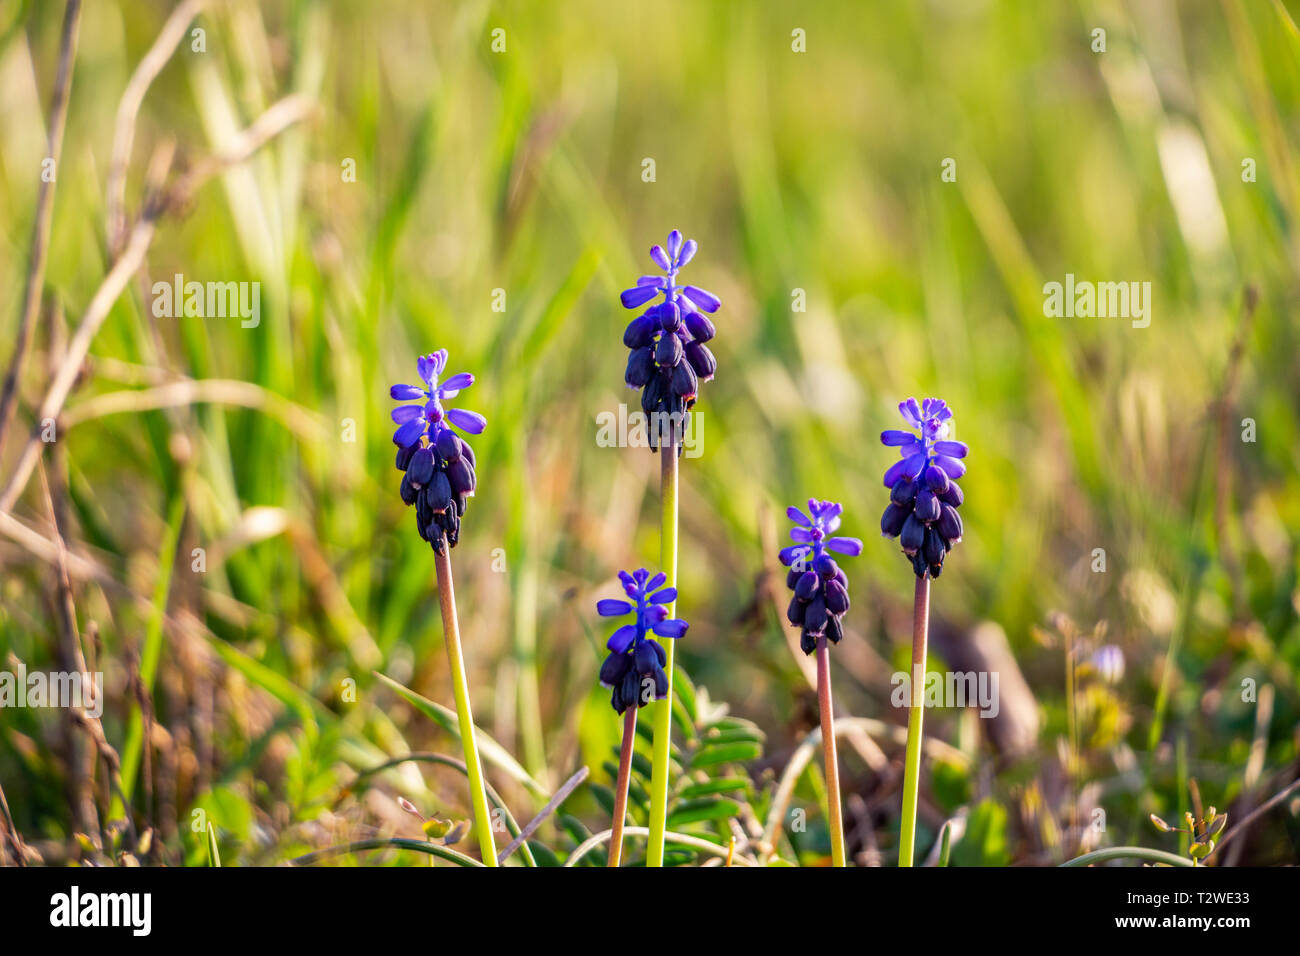 Close-up of March Muscari neglectum flowers on natural blurred background Stock Photo